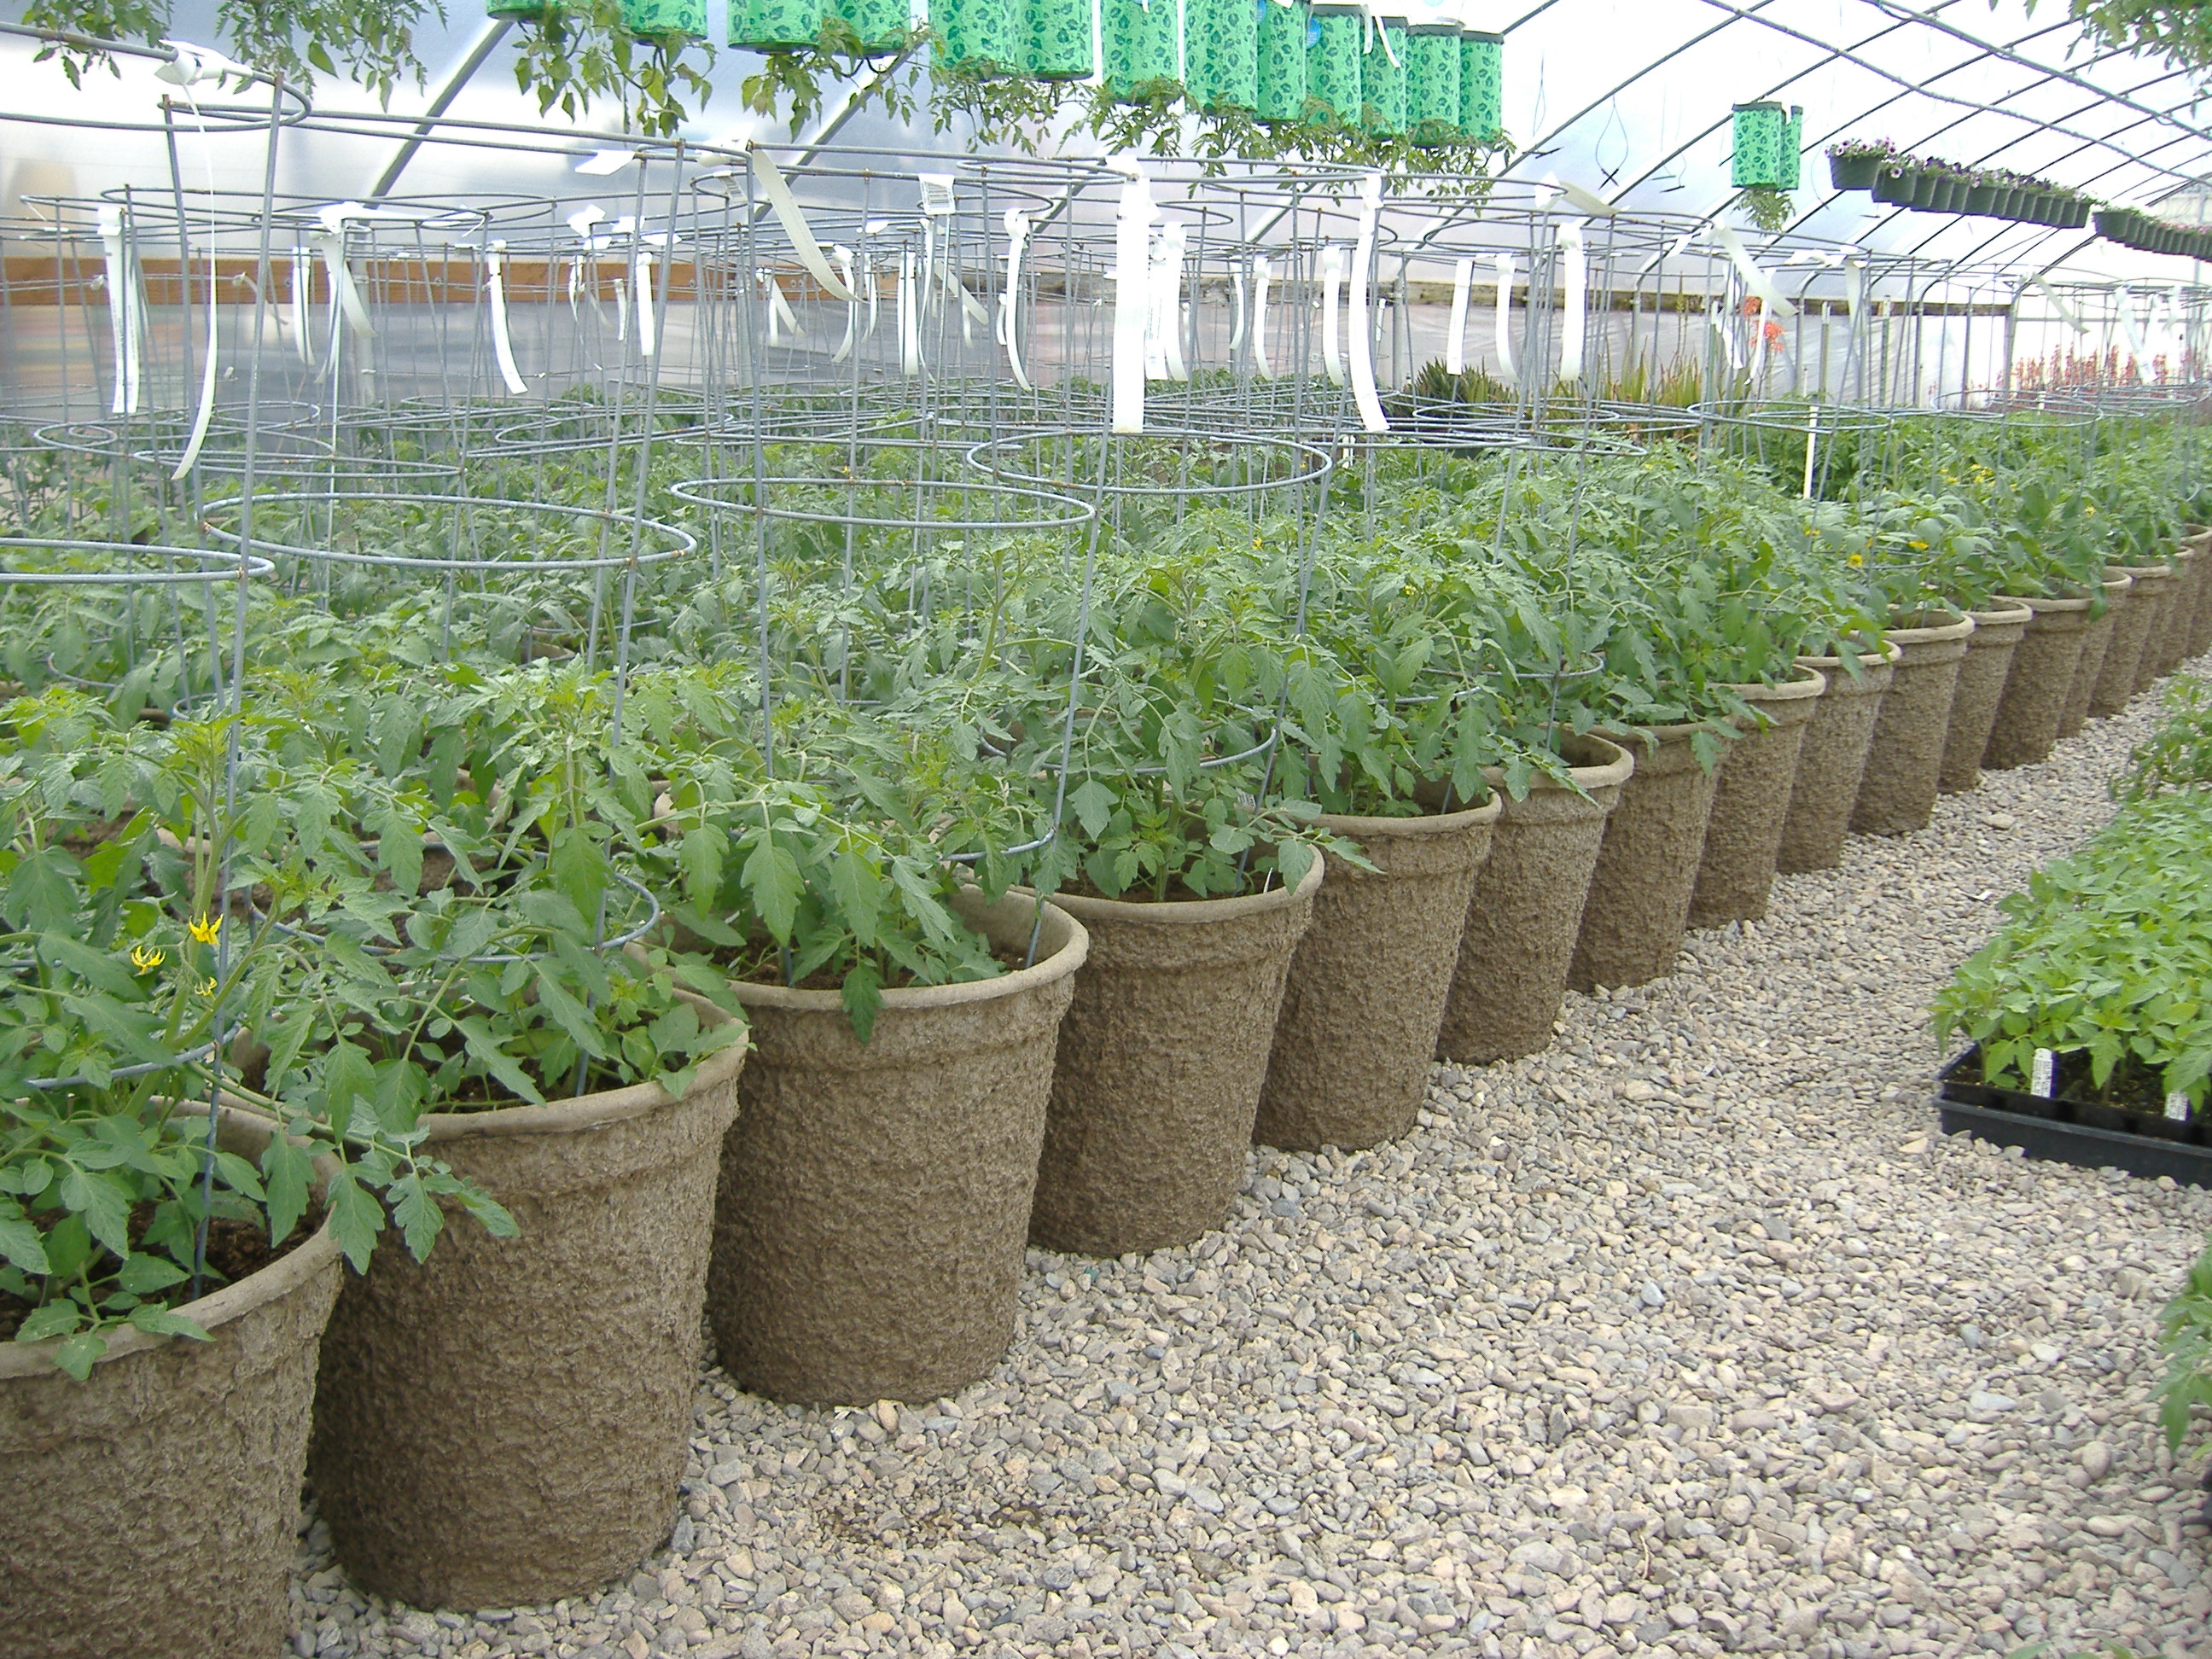 Tomatoes Planted in 15X16 Fiber Pots